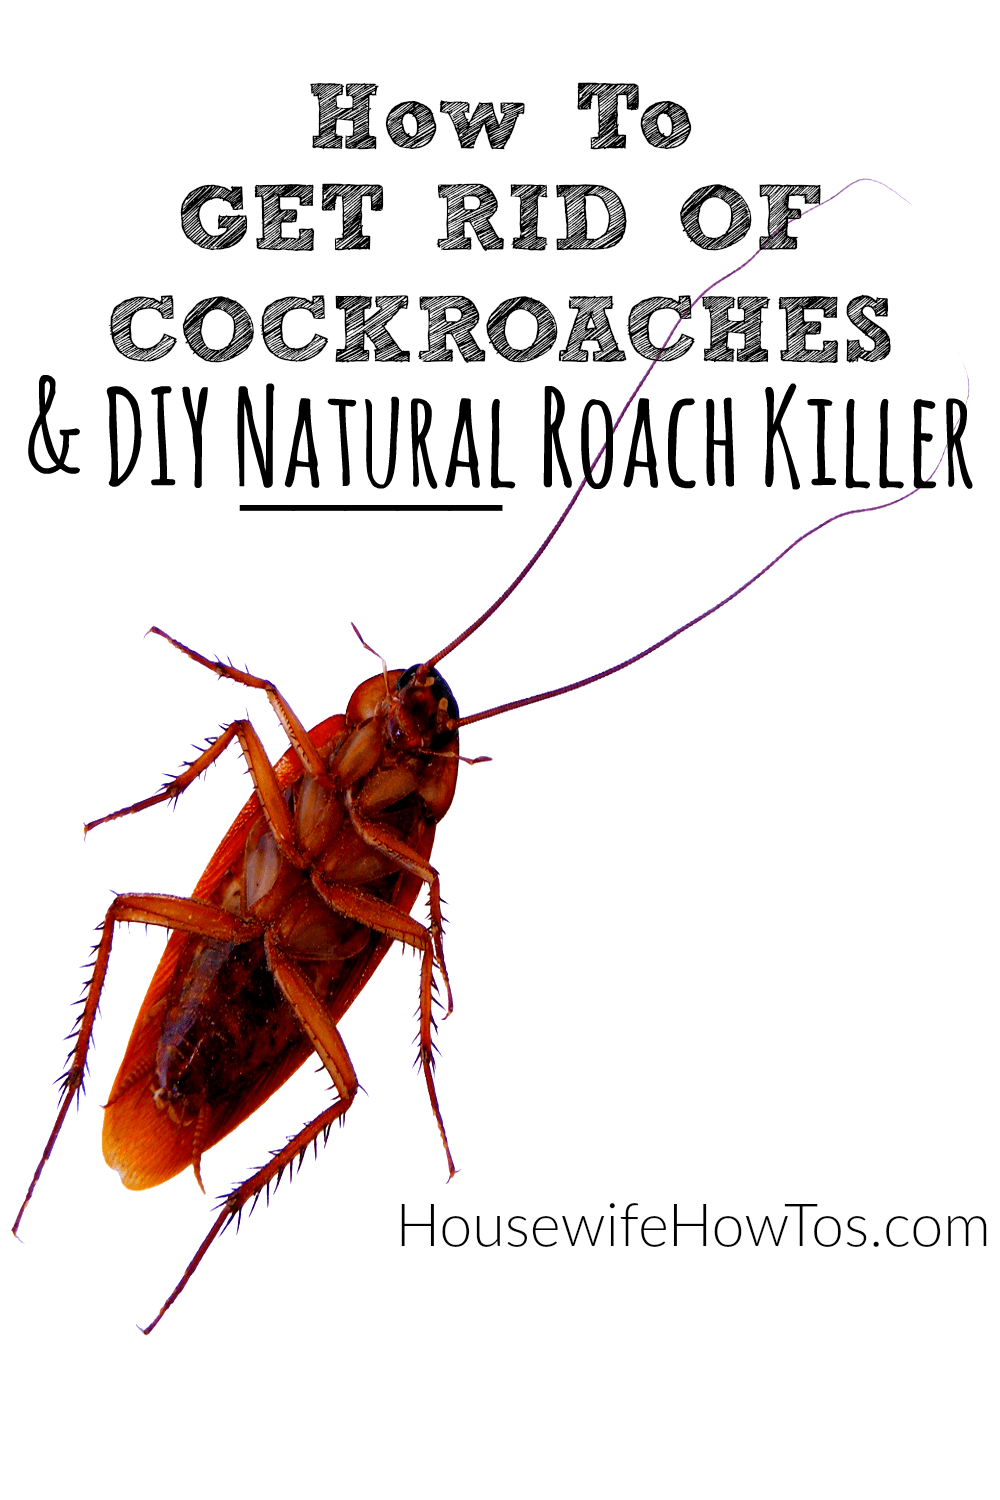 How To Rid Cockroaches Naturally